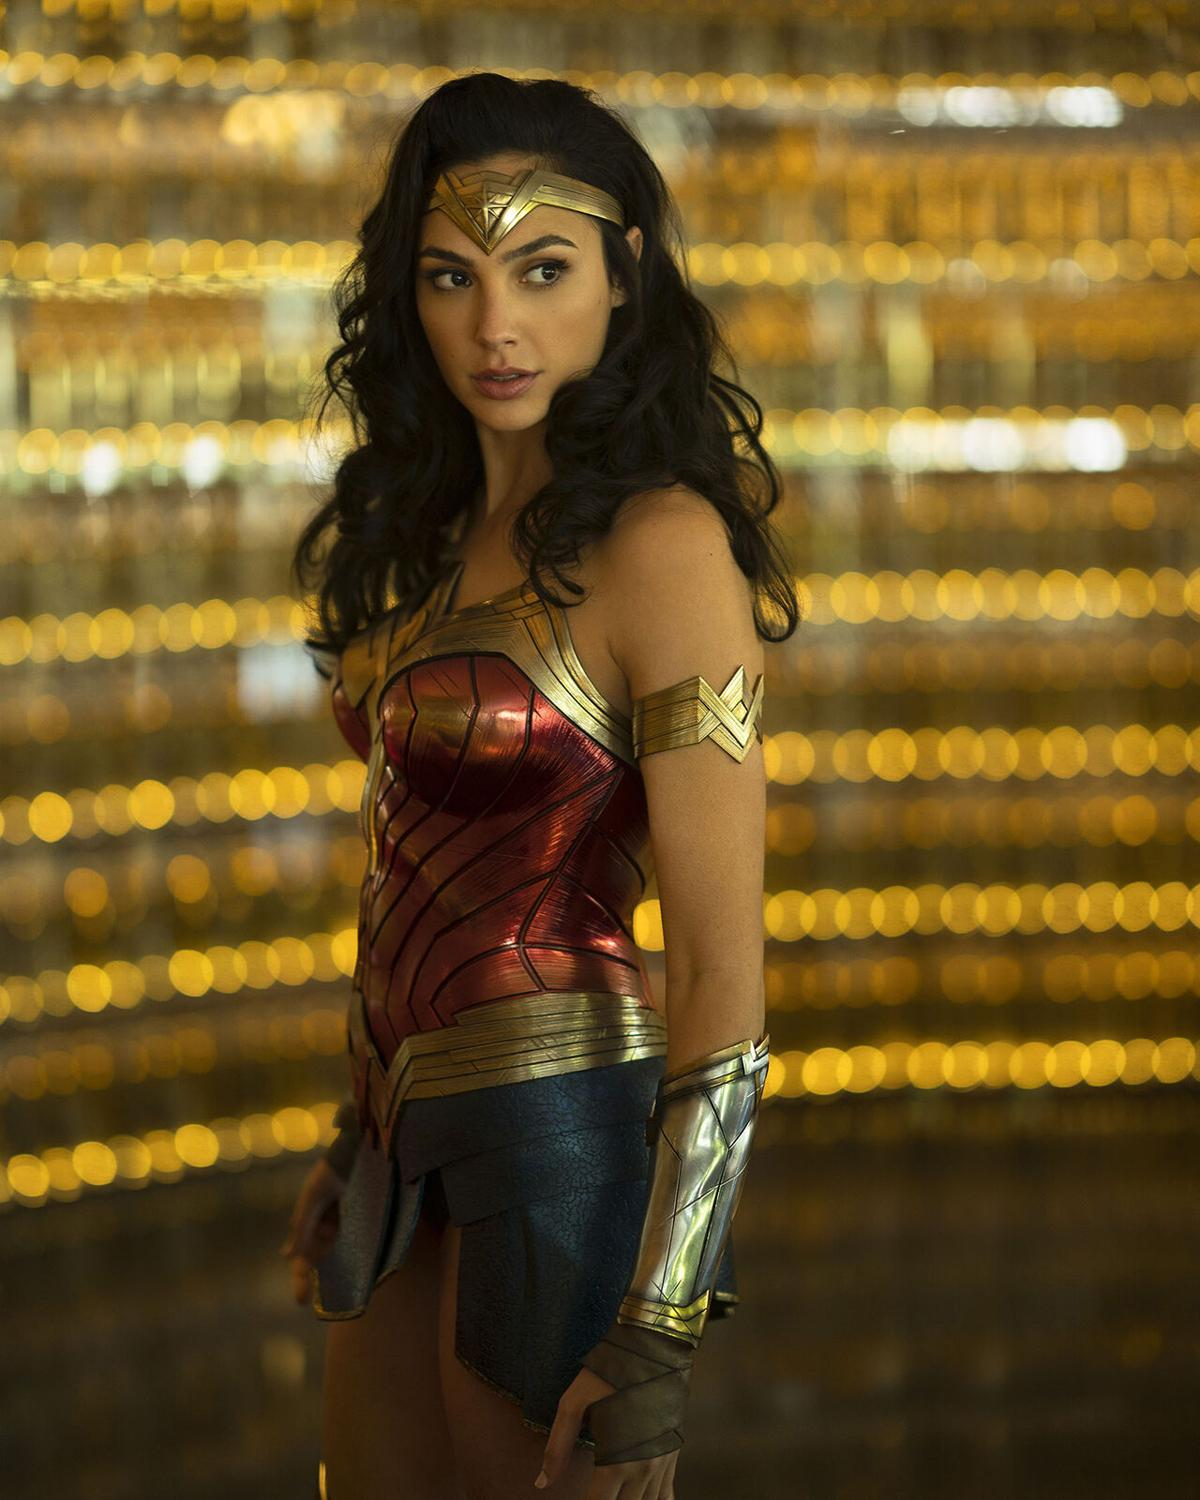 'Wonder Woman' may go to HBO Max soon after theater opening